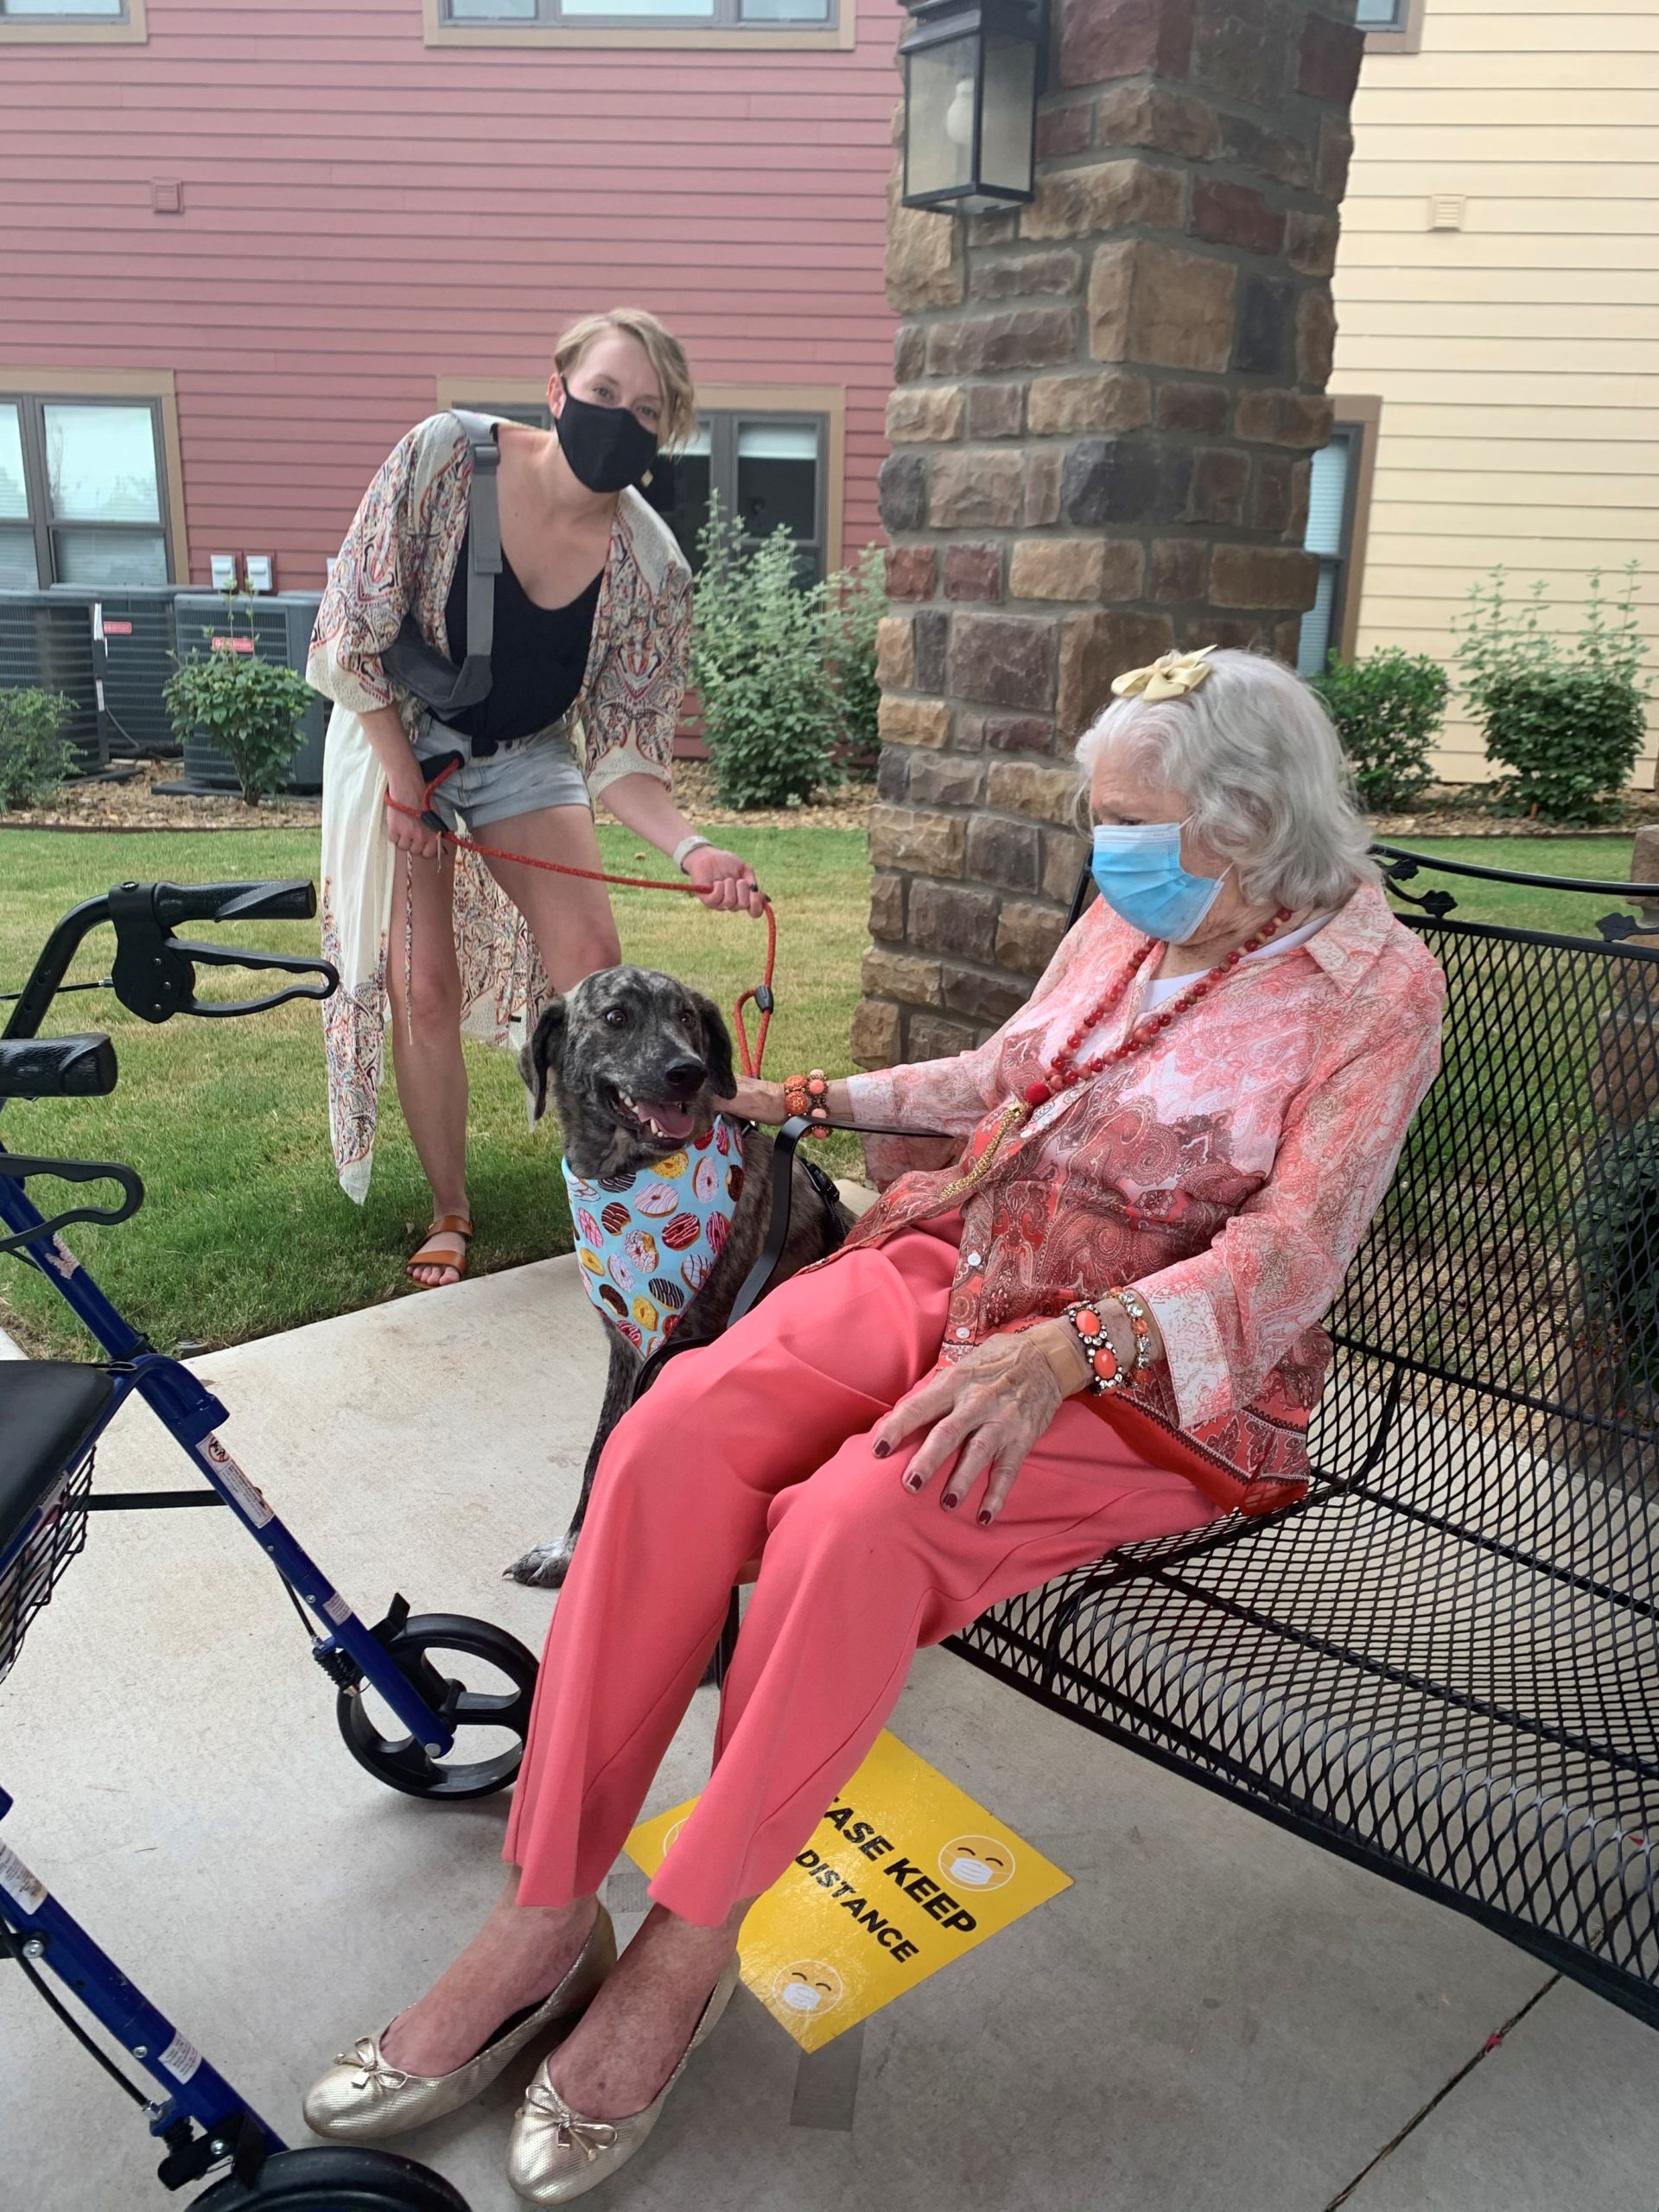 On National Dog Day residents were visited by 11 furry friends through-out the day and were treated to a buffet of dog themed snacks such as Pup-eroni Pizza, Corn Dogs, Maltese Milkshakes, Puppy Chow and Barkin' Bites!